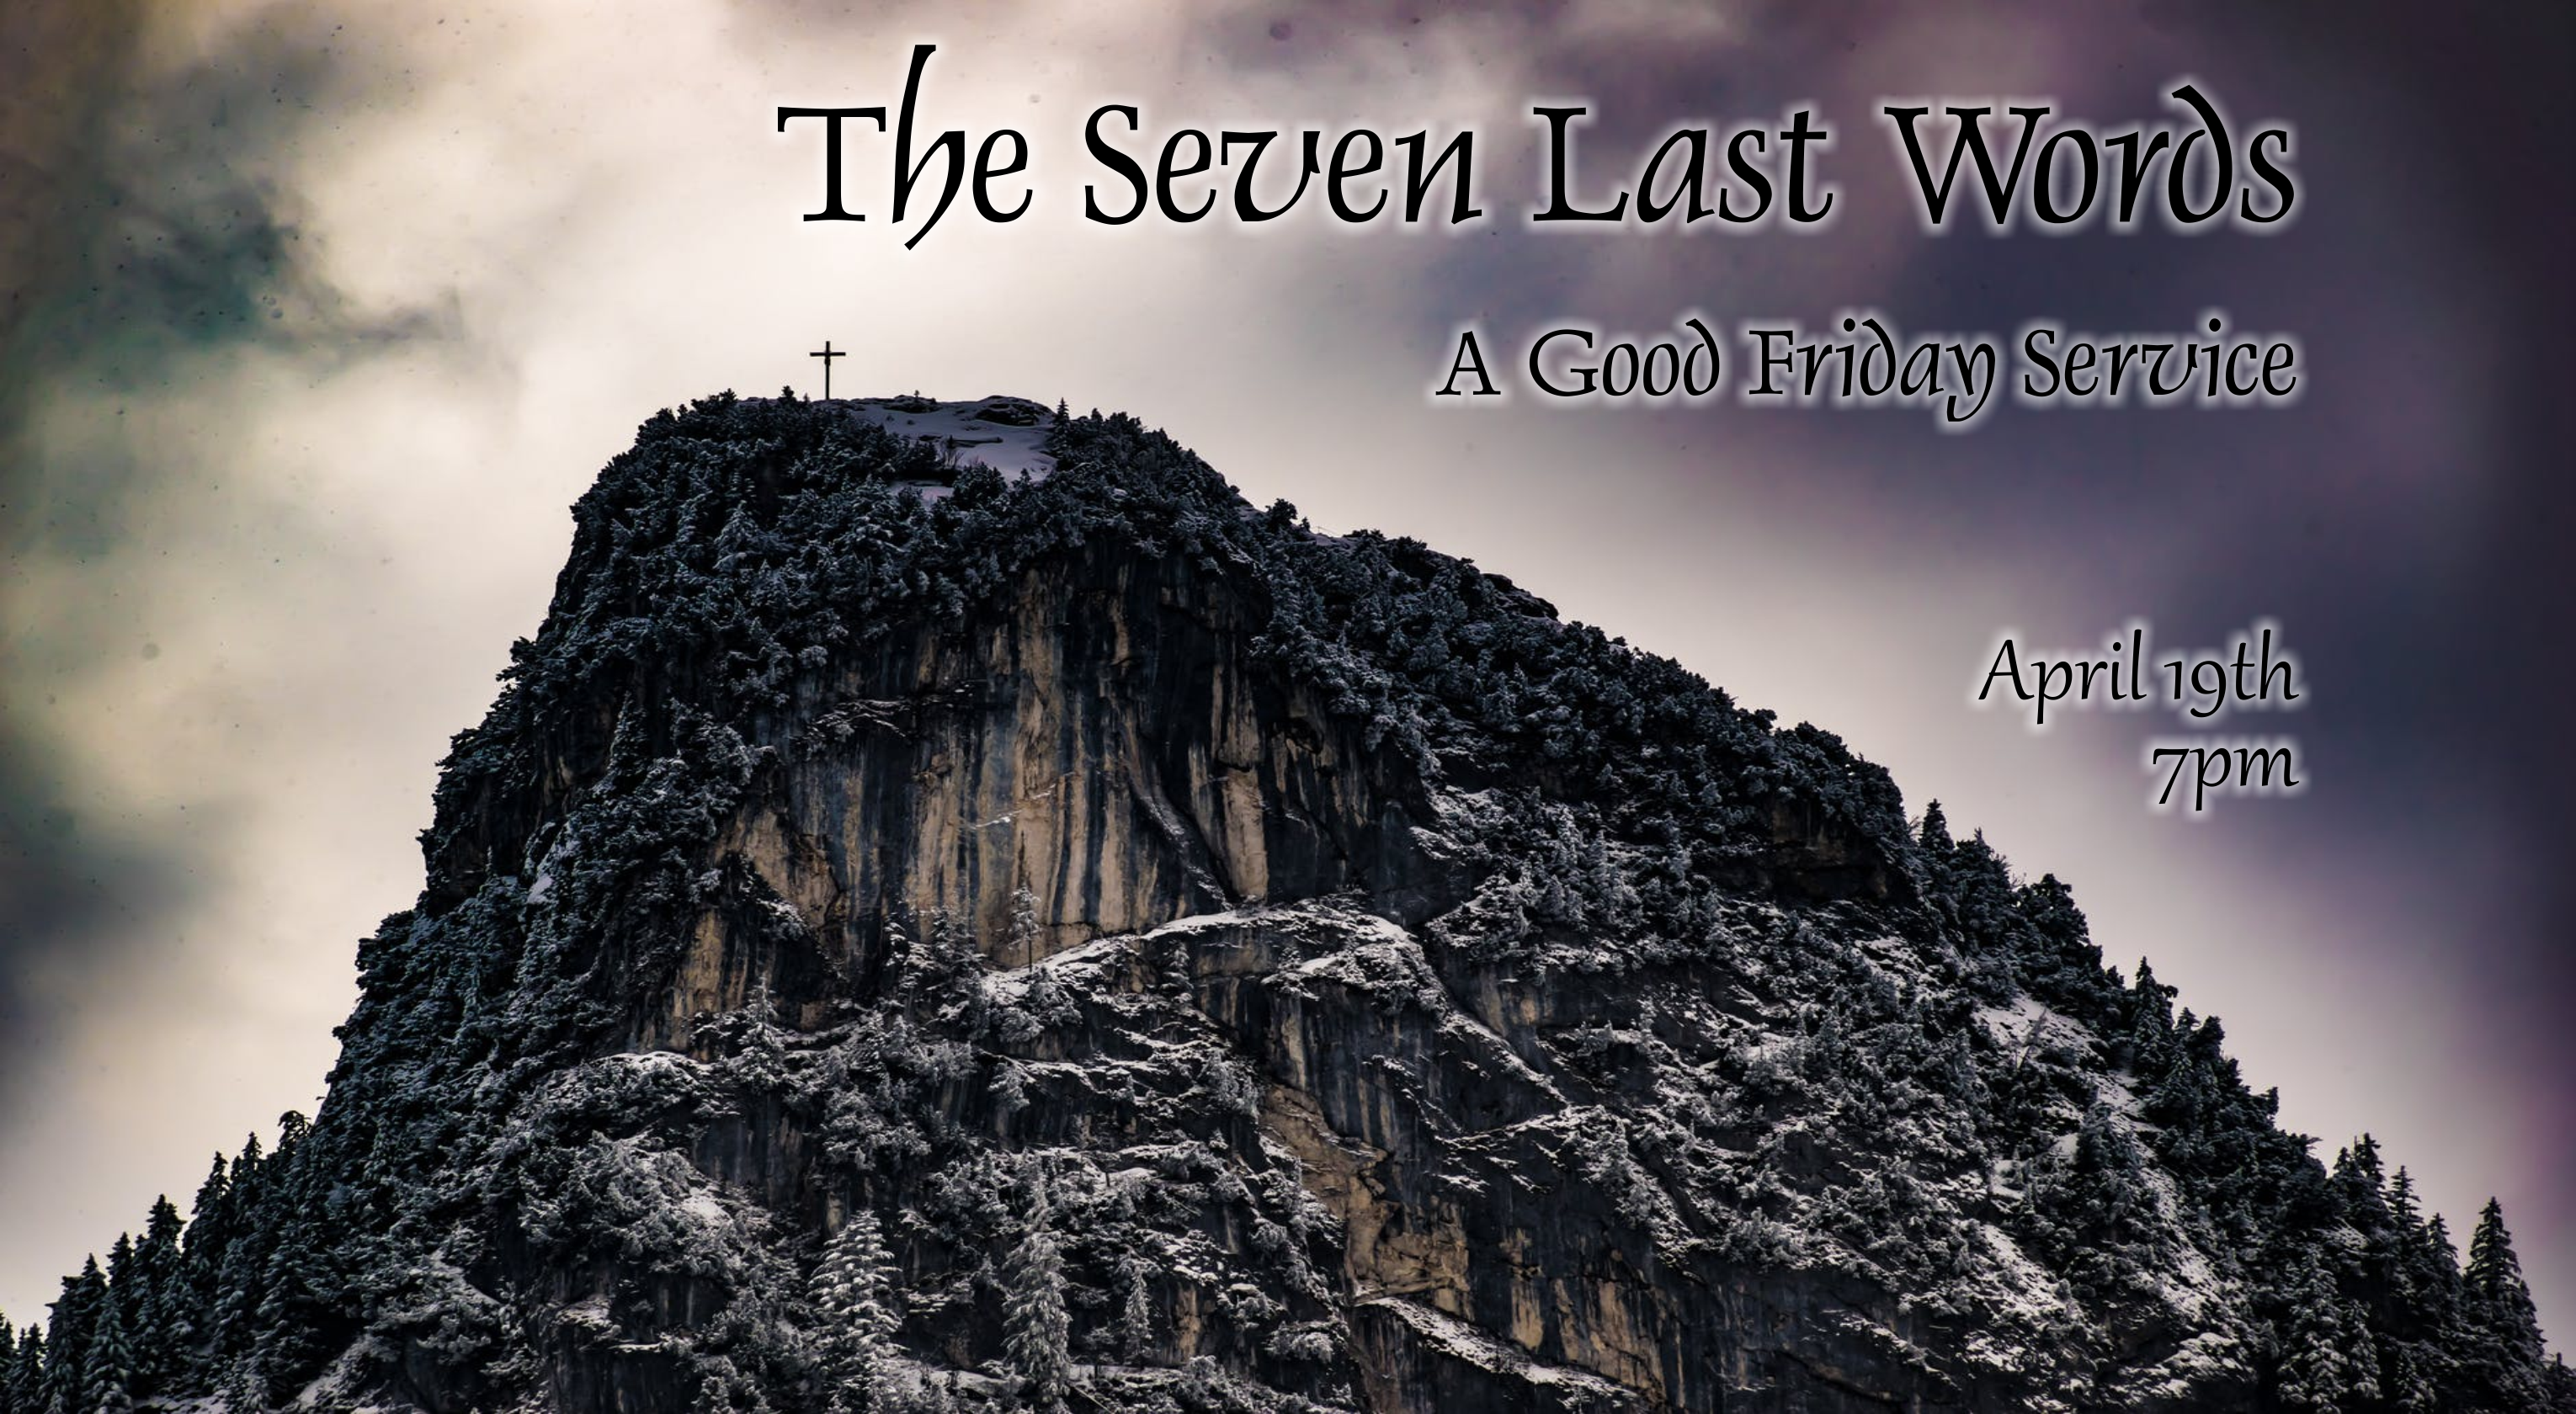 The Seven Last Words: A Good Friday Service